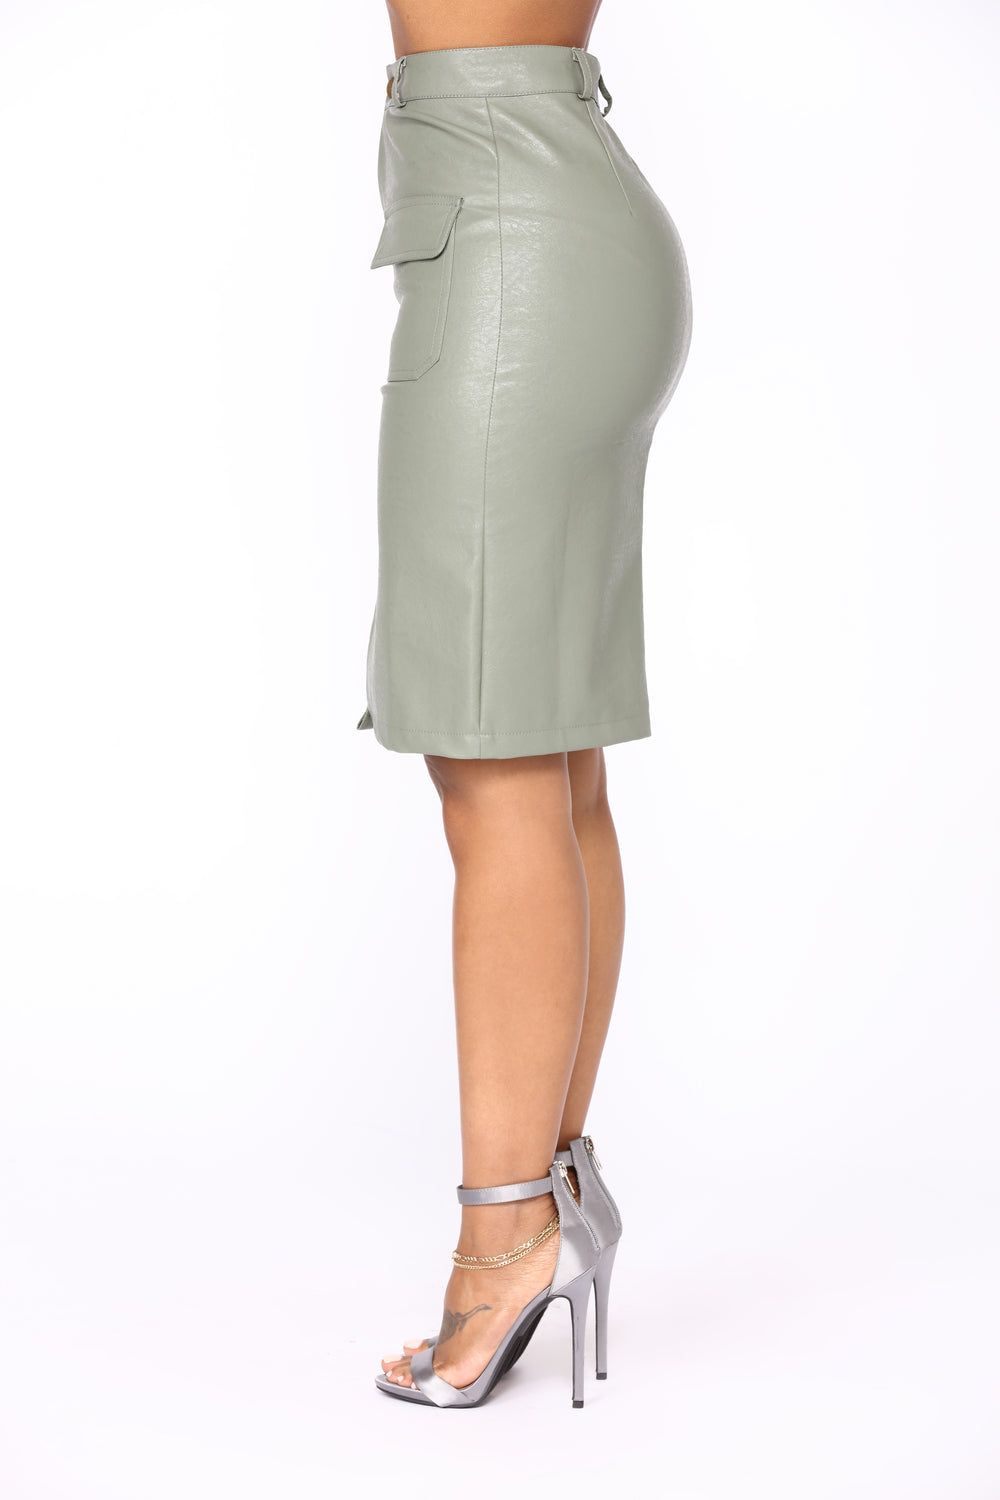 No Free Time Faux Leather Skirt - Olive